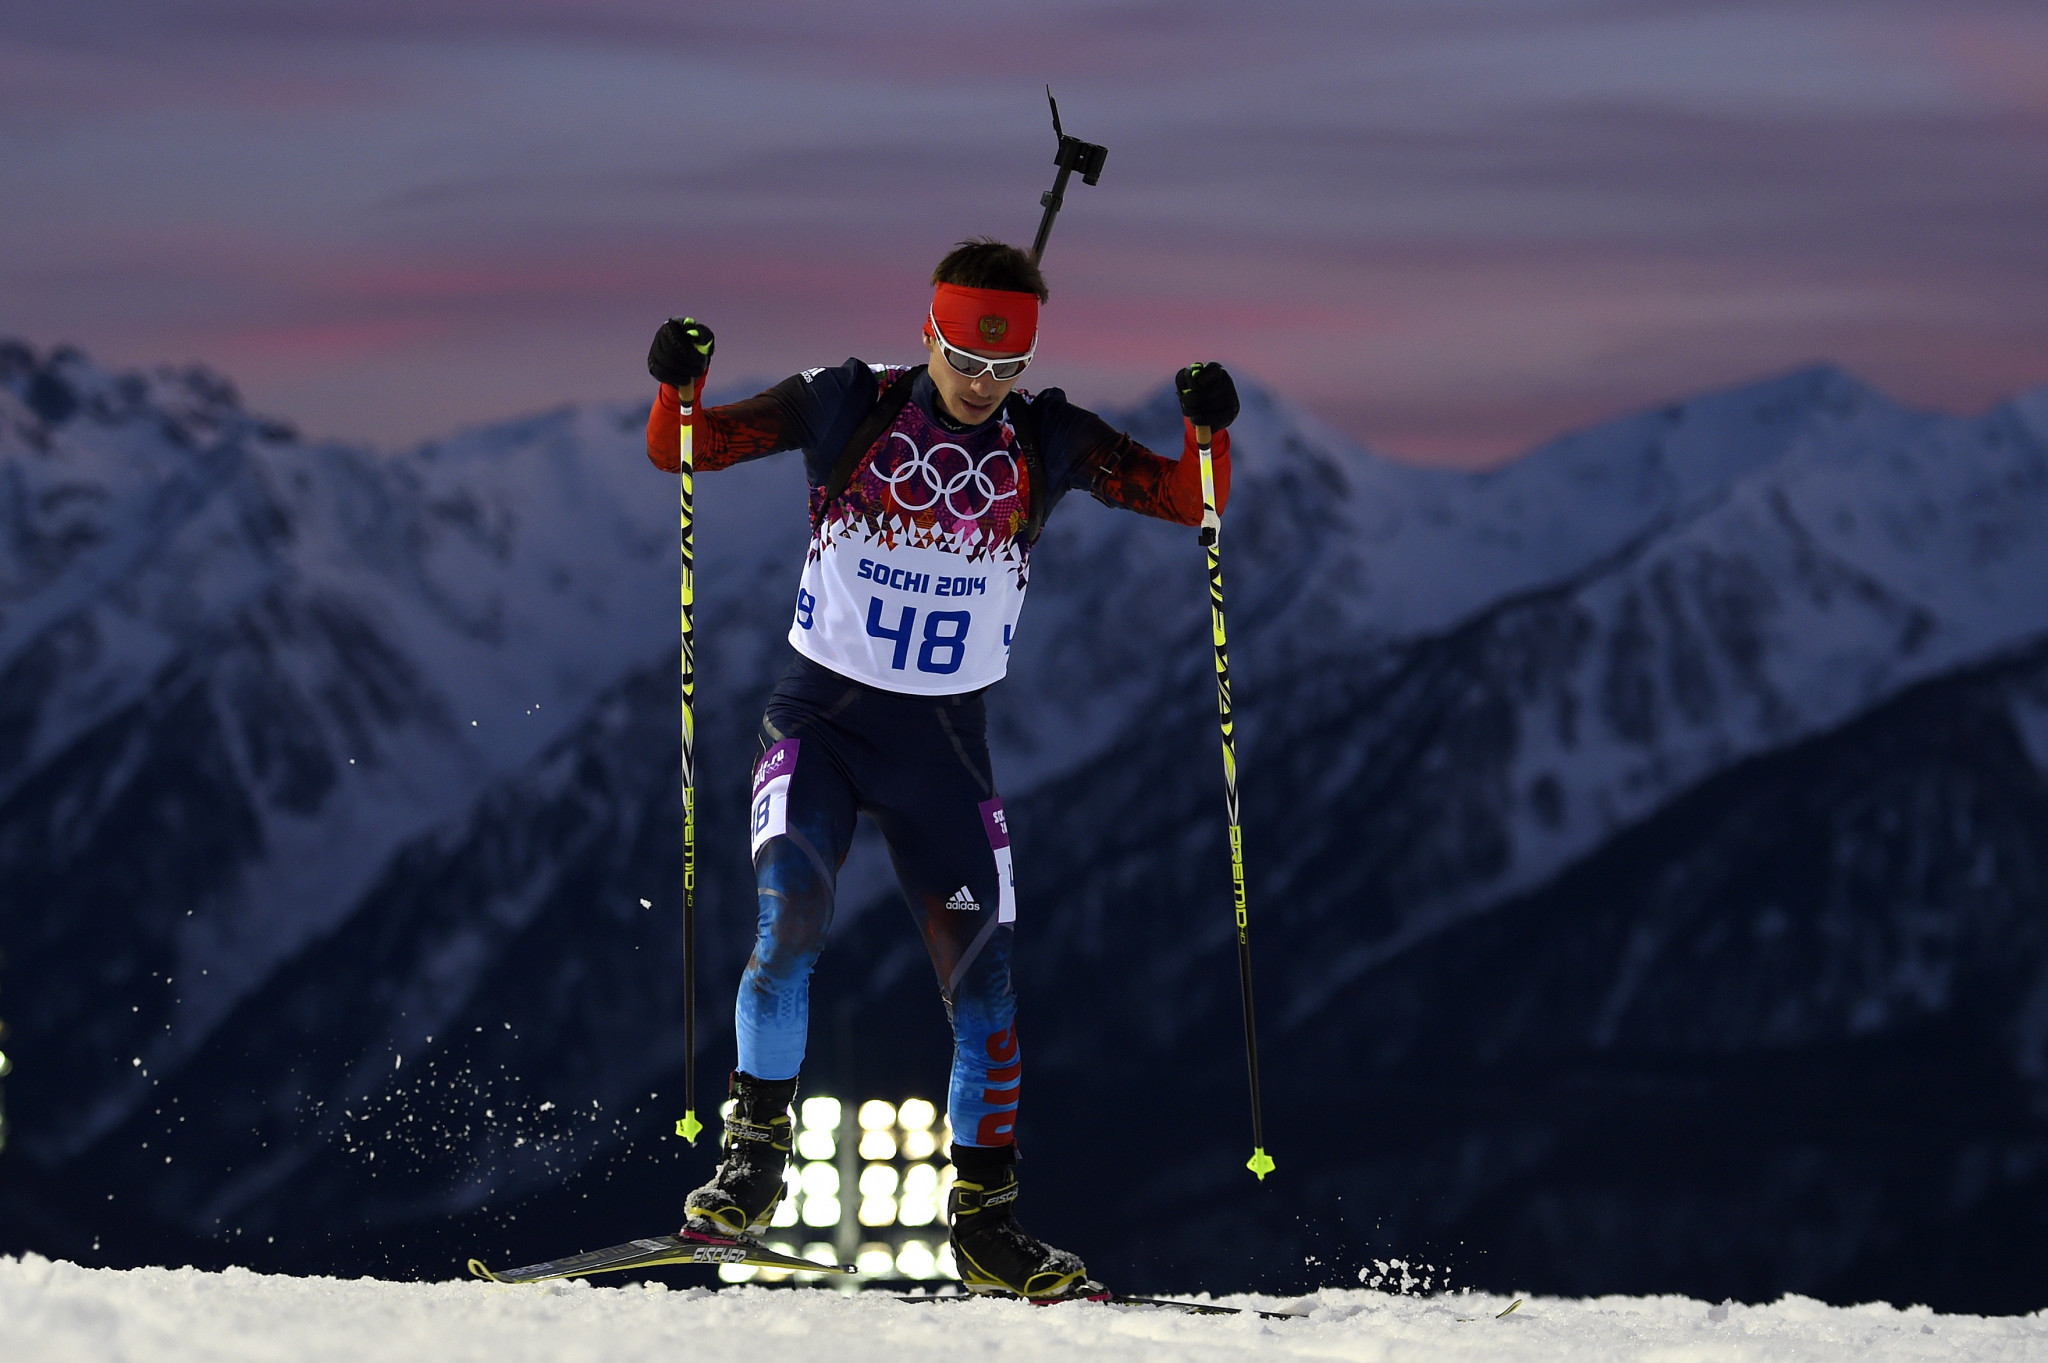 CAS appeals of Russian biathletes Ustyugov and Sleptsova postponed to 2022